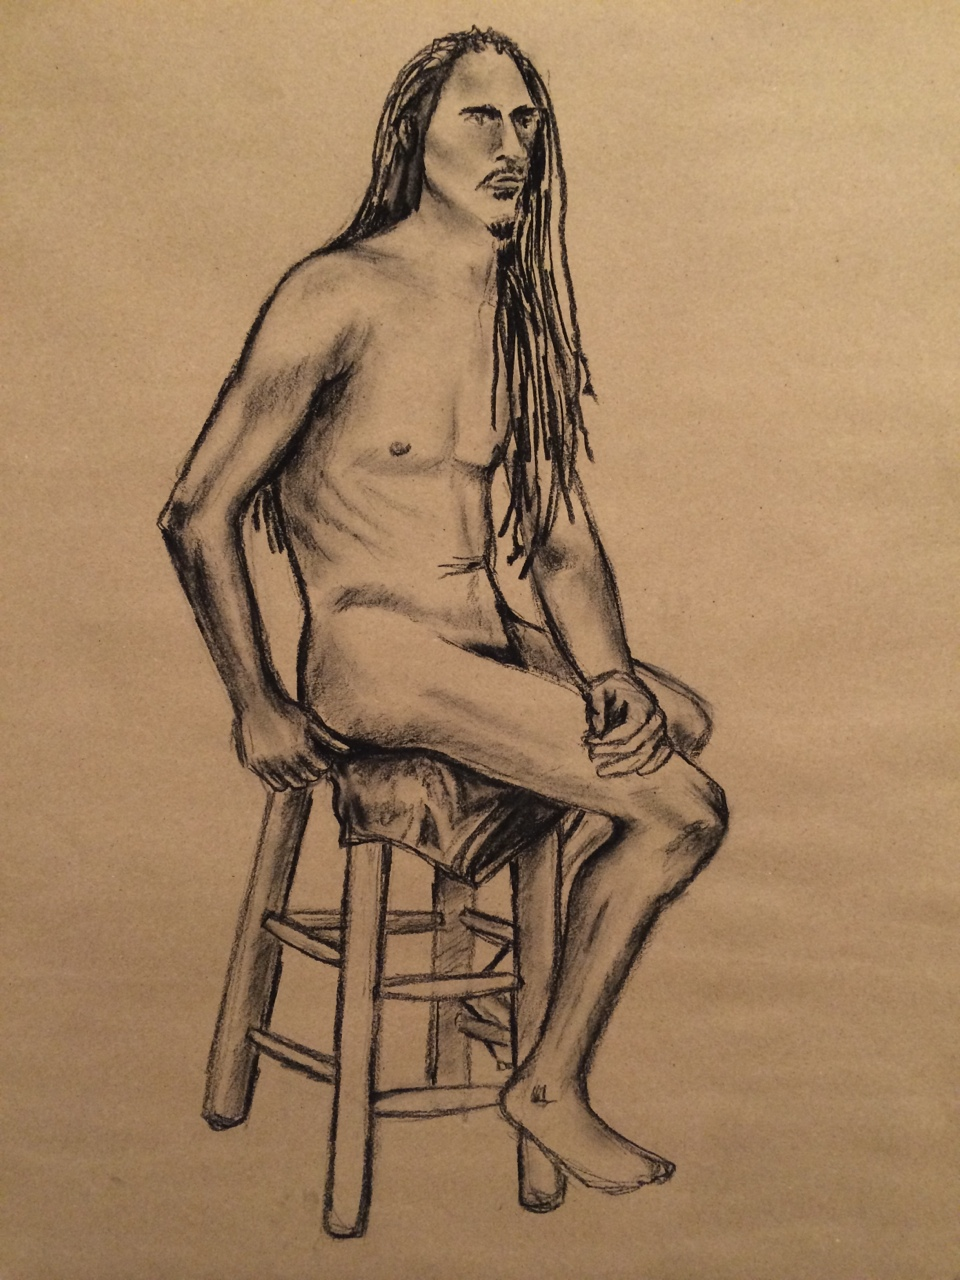 Figure Sketch I   2014. Charcoal on paper.